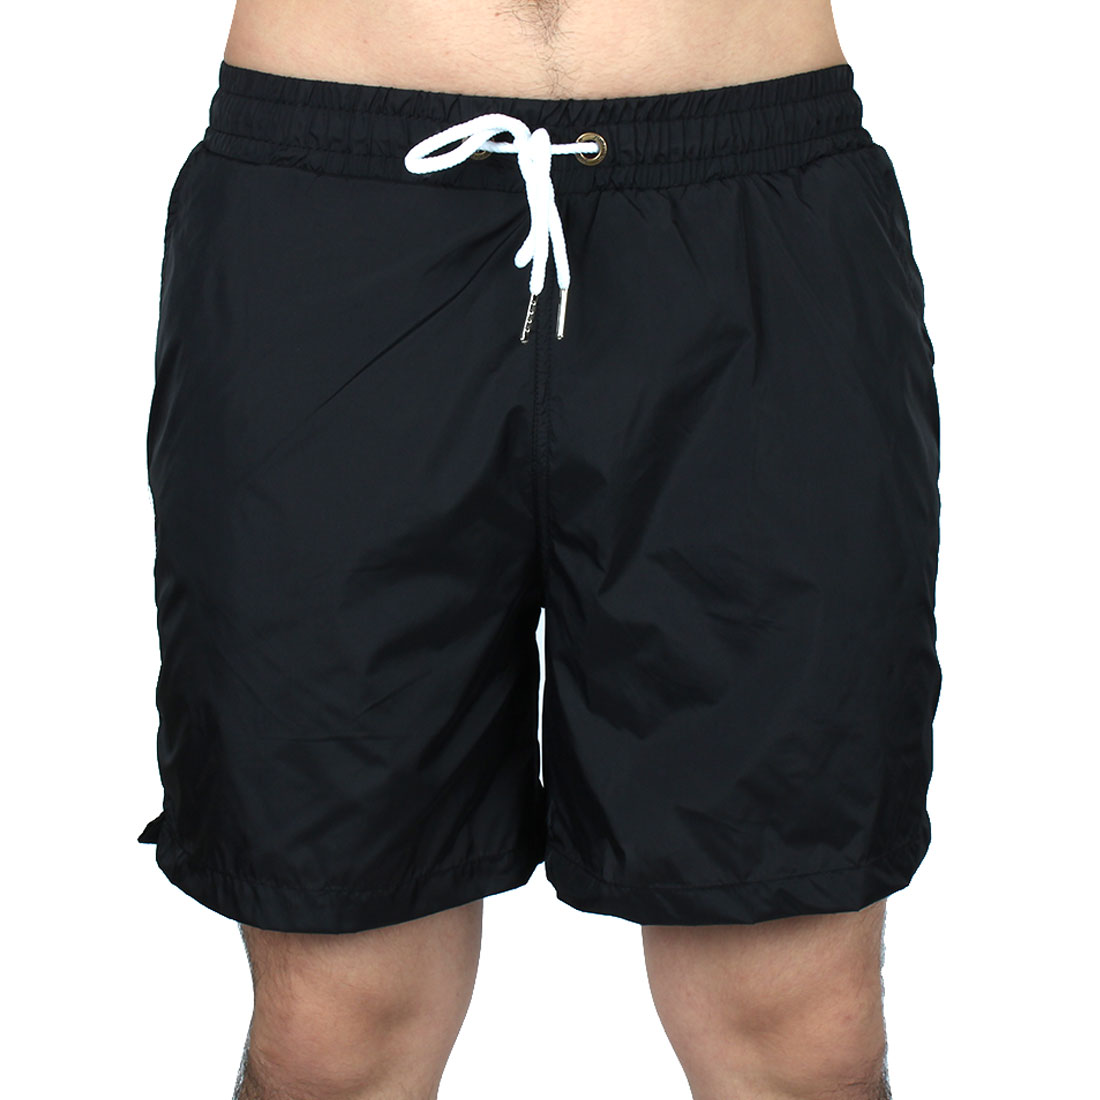 3e8bf5f148 Men Exercise Running Polyester Casual Breathable Summer Beach Surf Board  Shorts Pants W34 Black 0